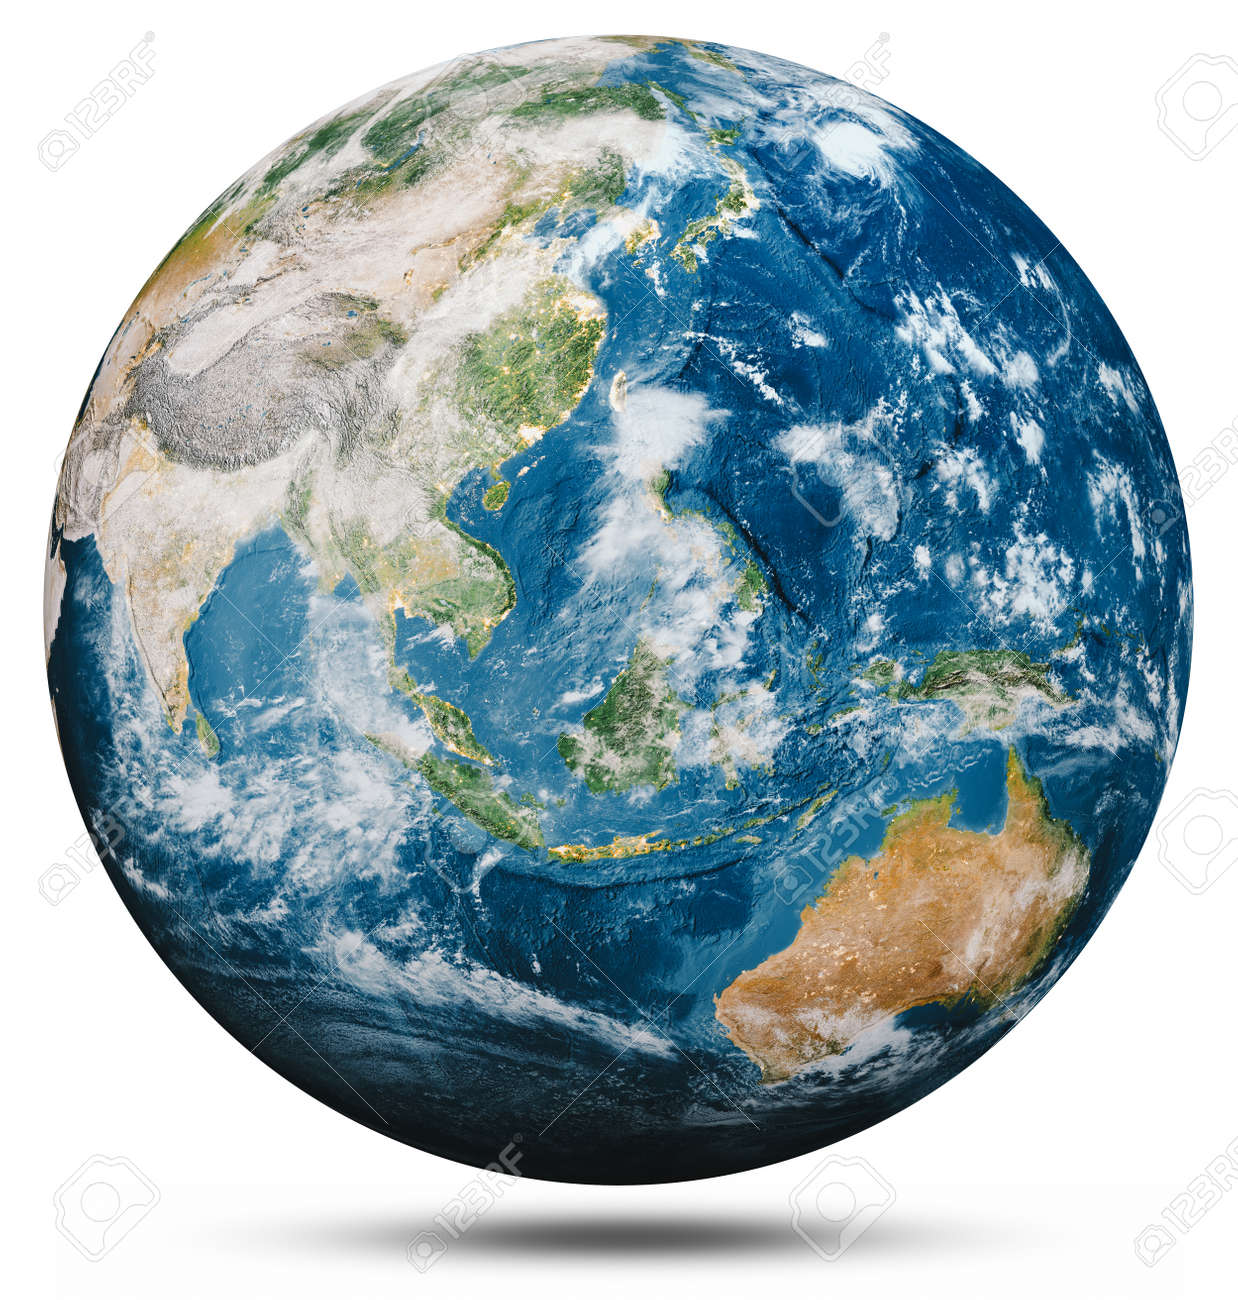 Planet Earth globe isolated. - 146048530